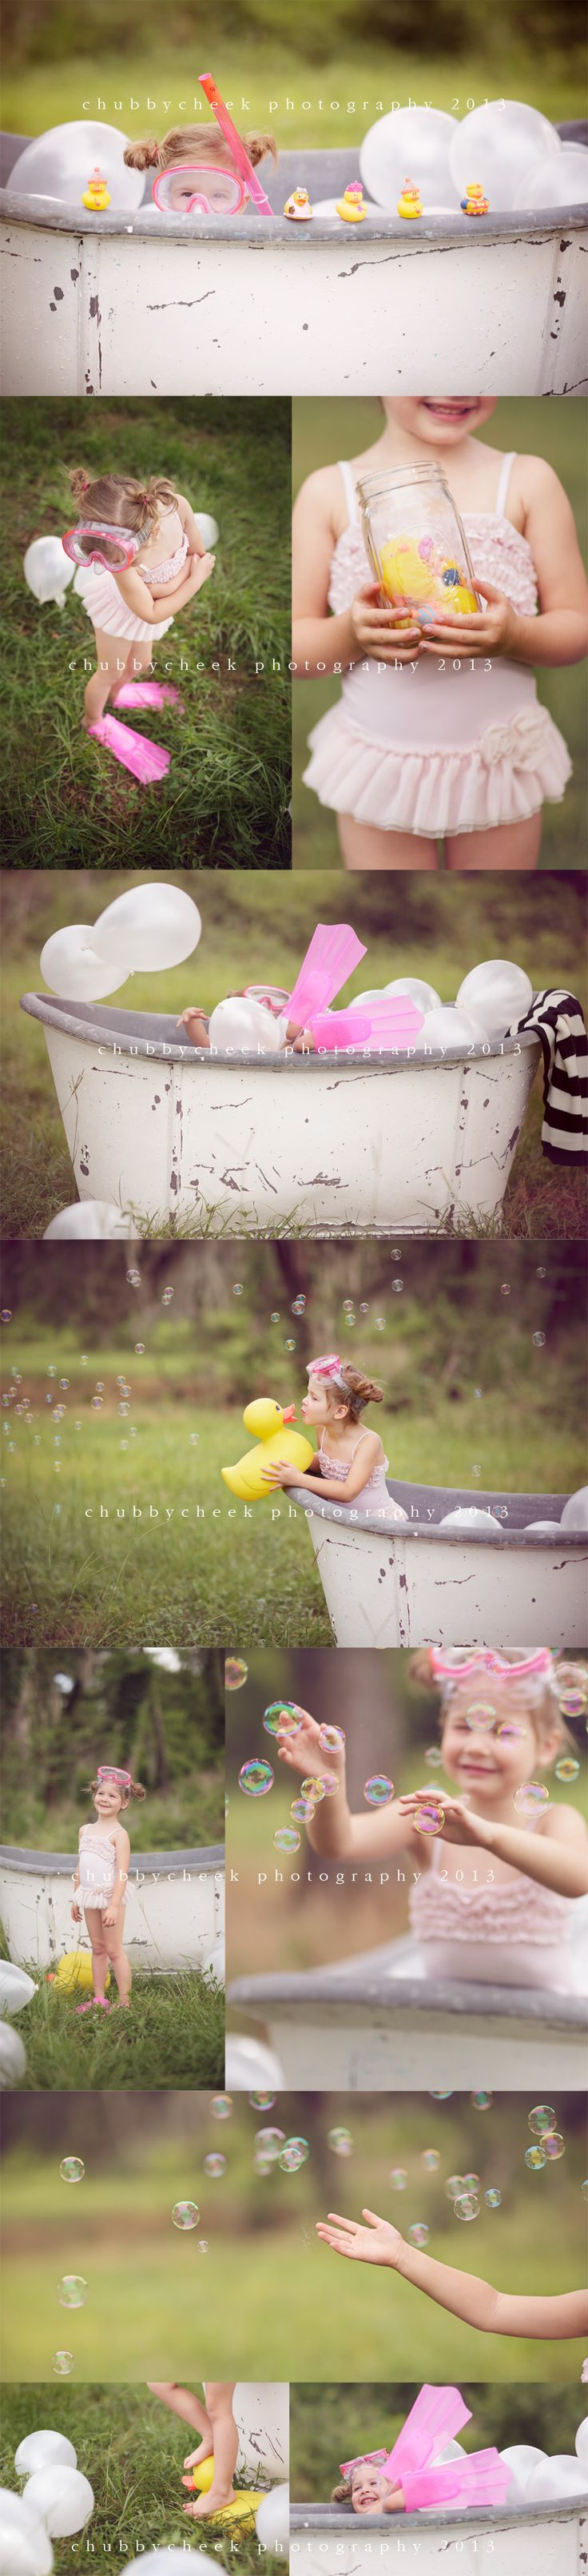 Chubby Cheek Photography Houston, TX Natural Light Photographer. Photo Session Ideas | Props | Prop | Pose Idea | Child | Fun Outdoor Bubble Bath | Swimming | Summer